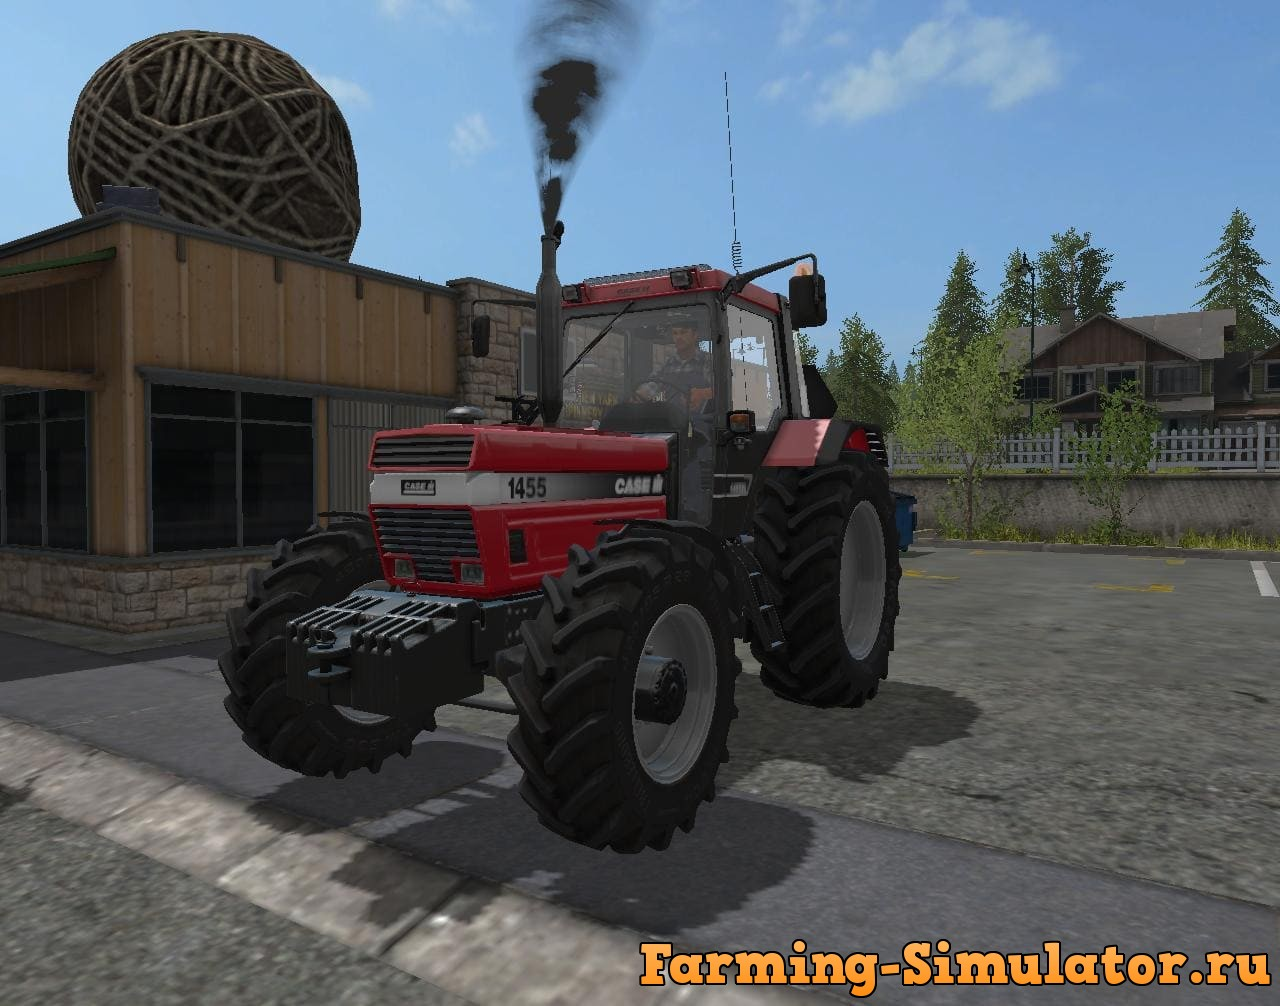 Moд трактор CASE IH 1455 XL V1.0 Farming Simulator 17